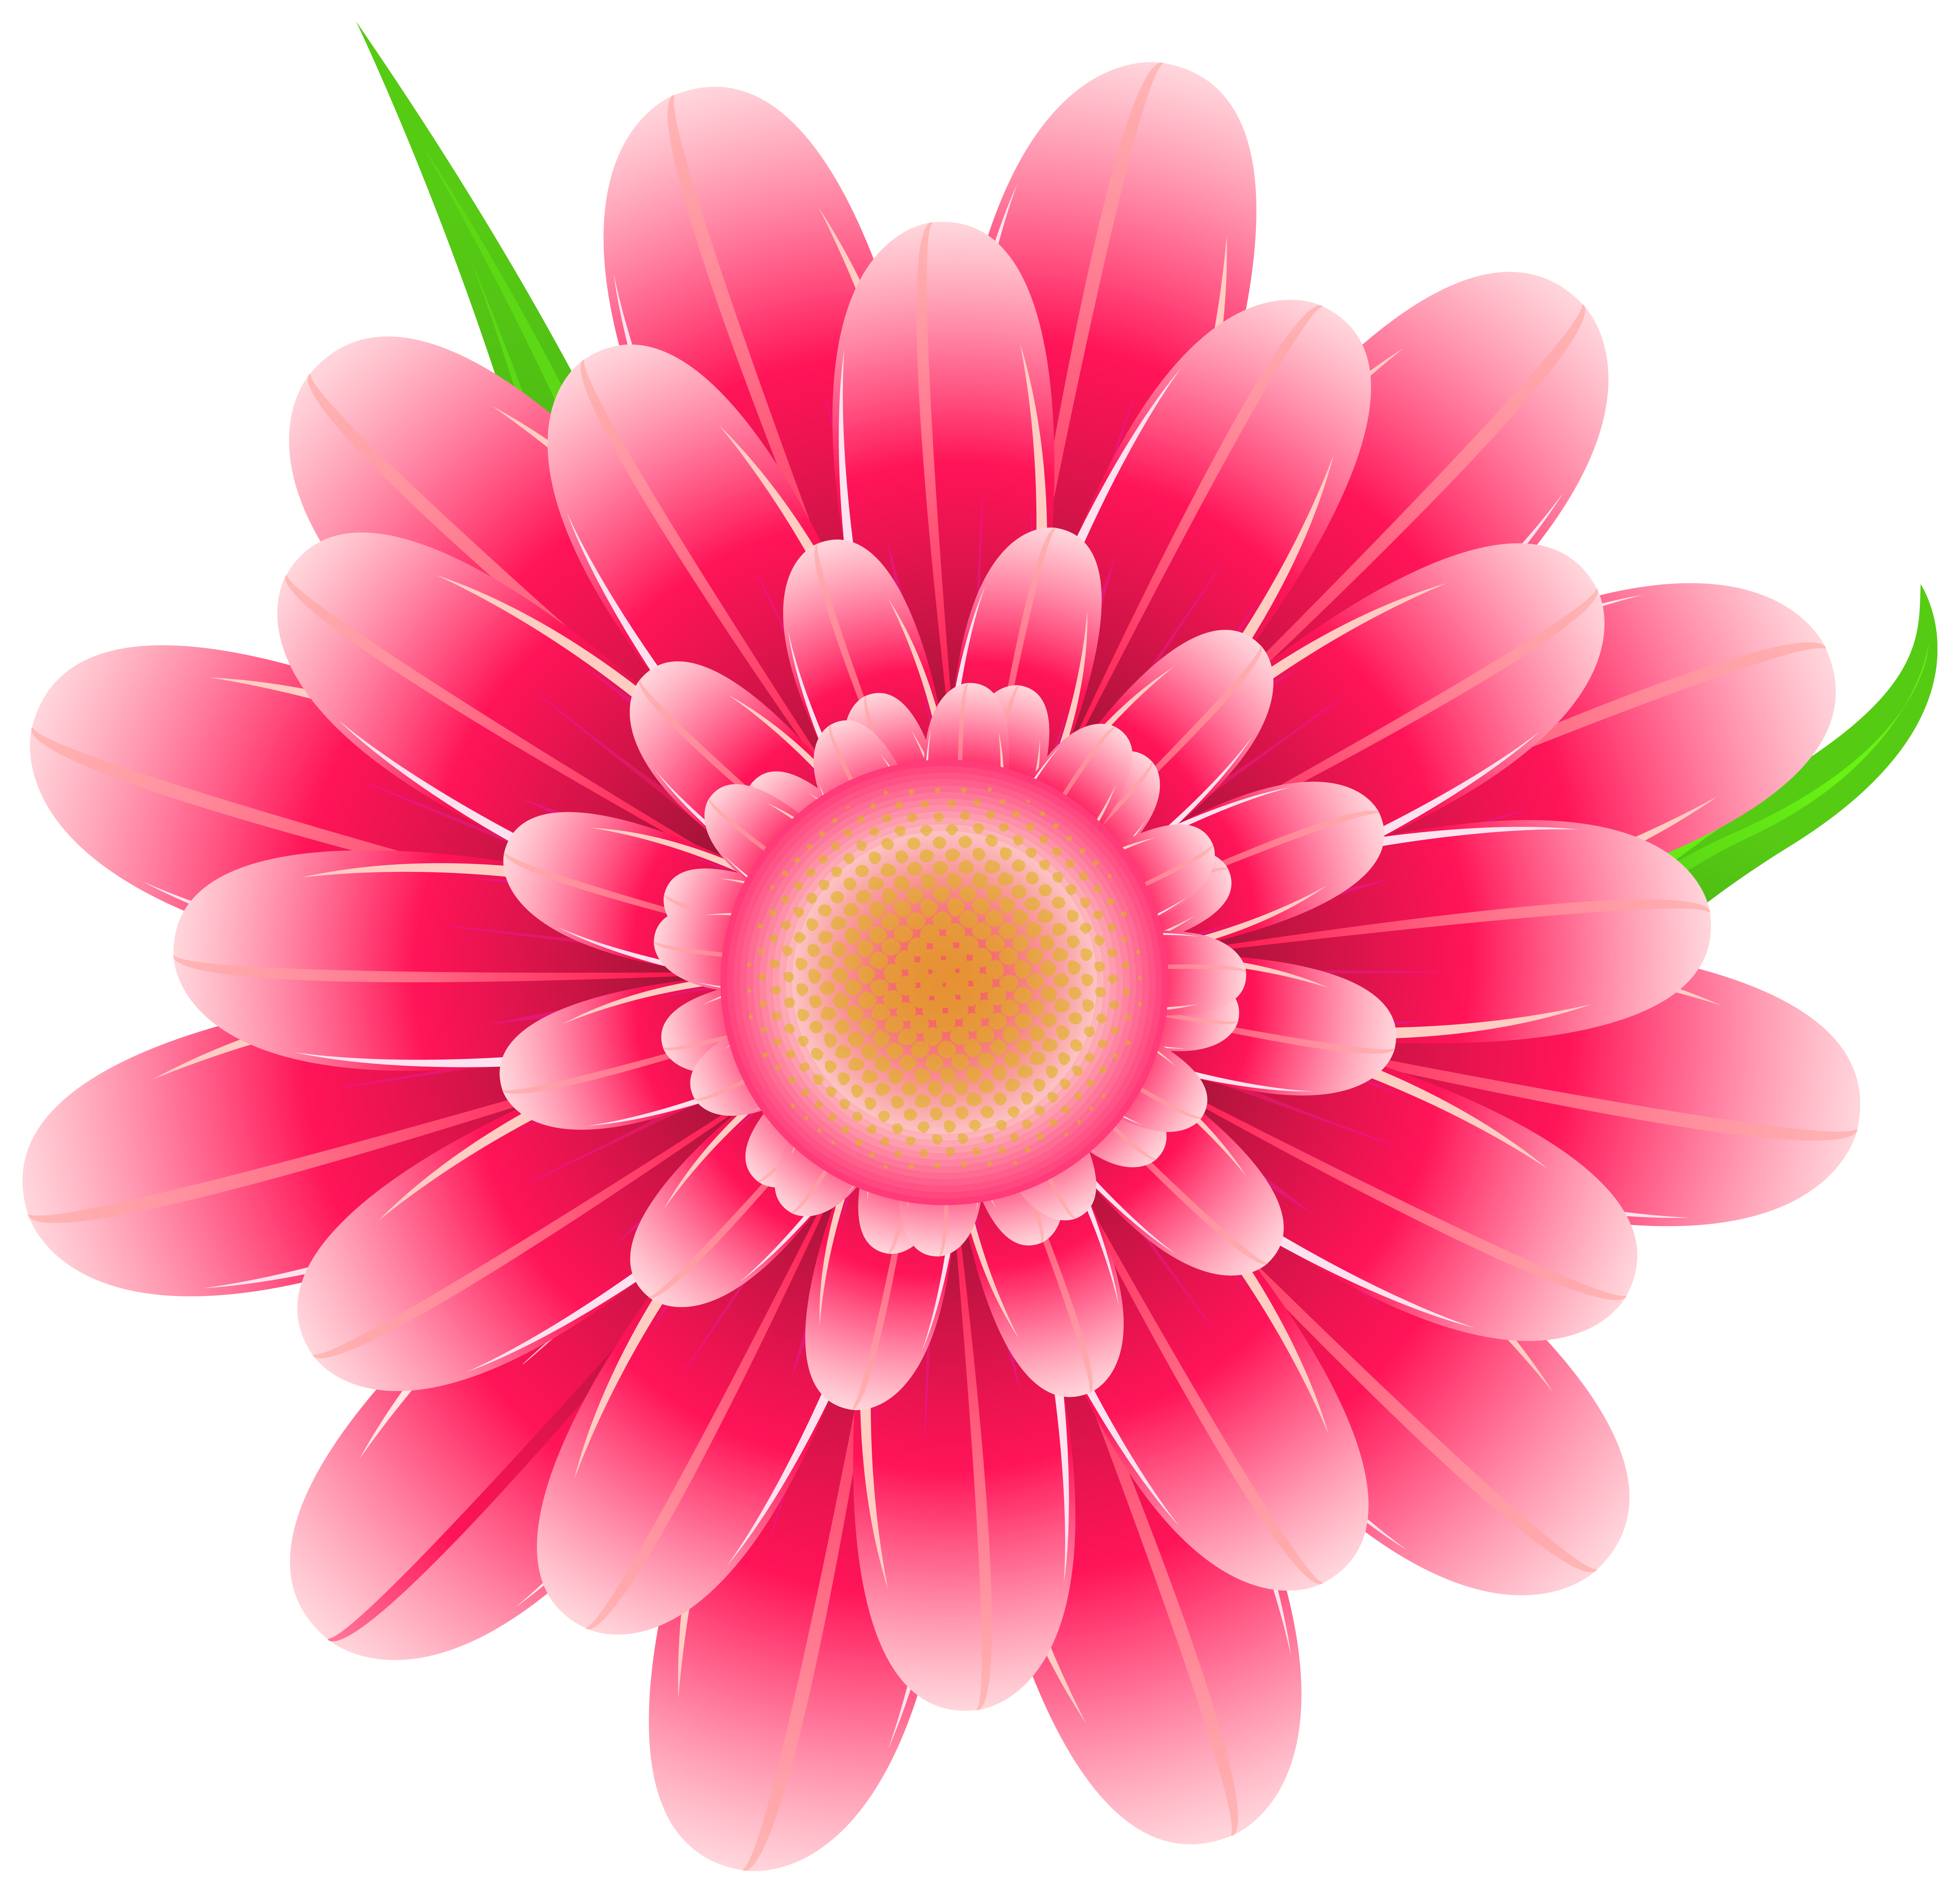 Flower clipart png.  collection of transparent